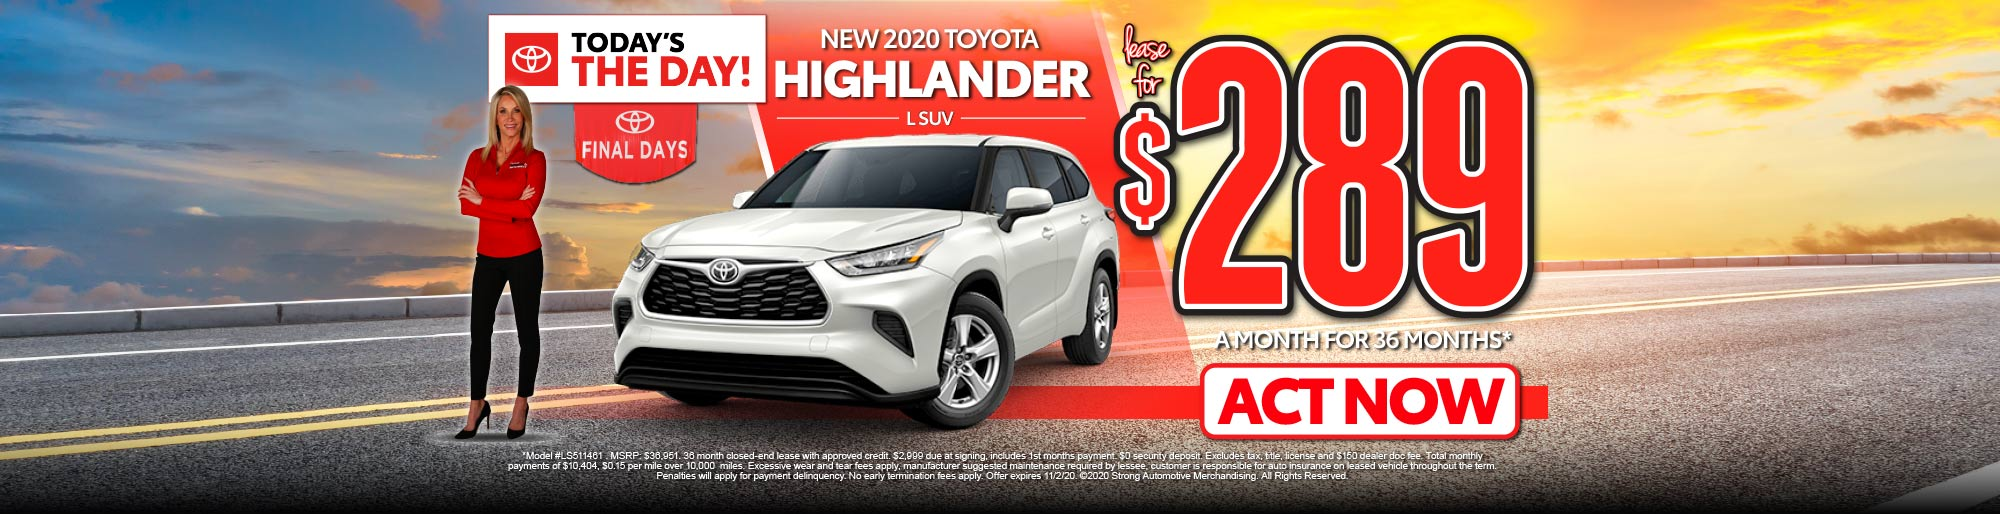 LEASE A NEW 2020 HIGHLANDER L SUV FOR $289/MO* - ACT NOW